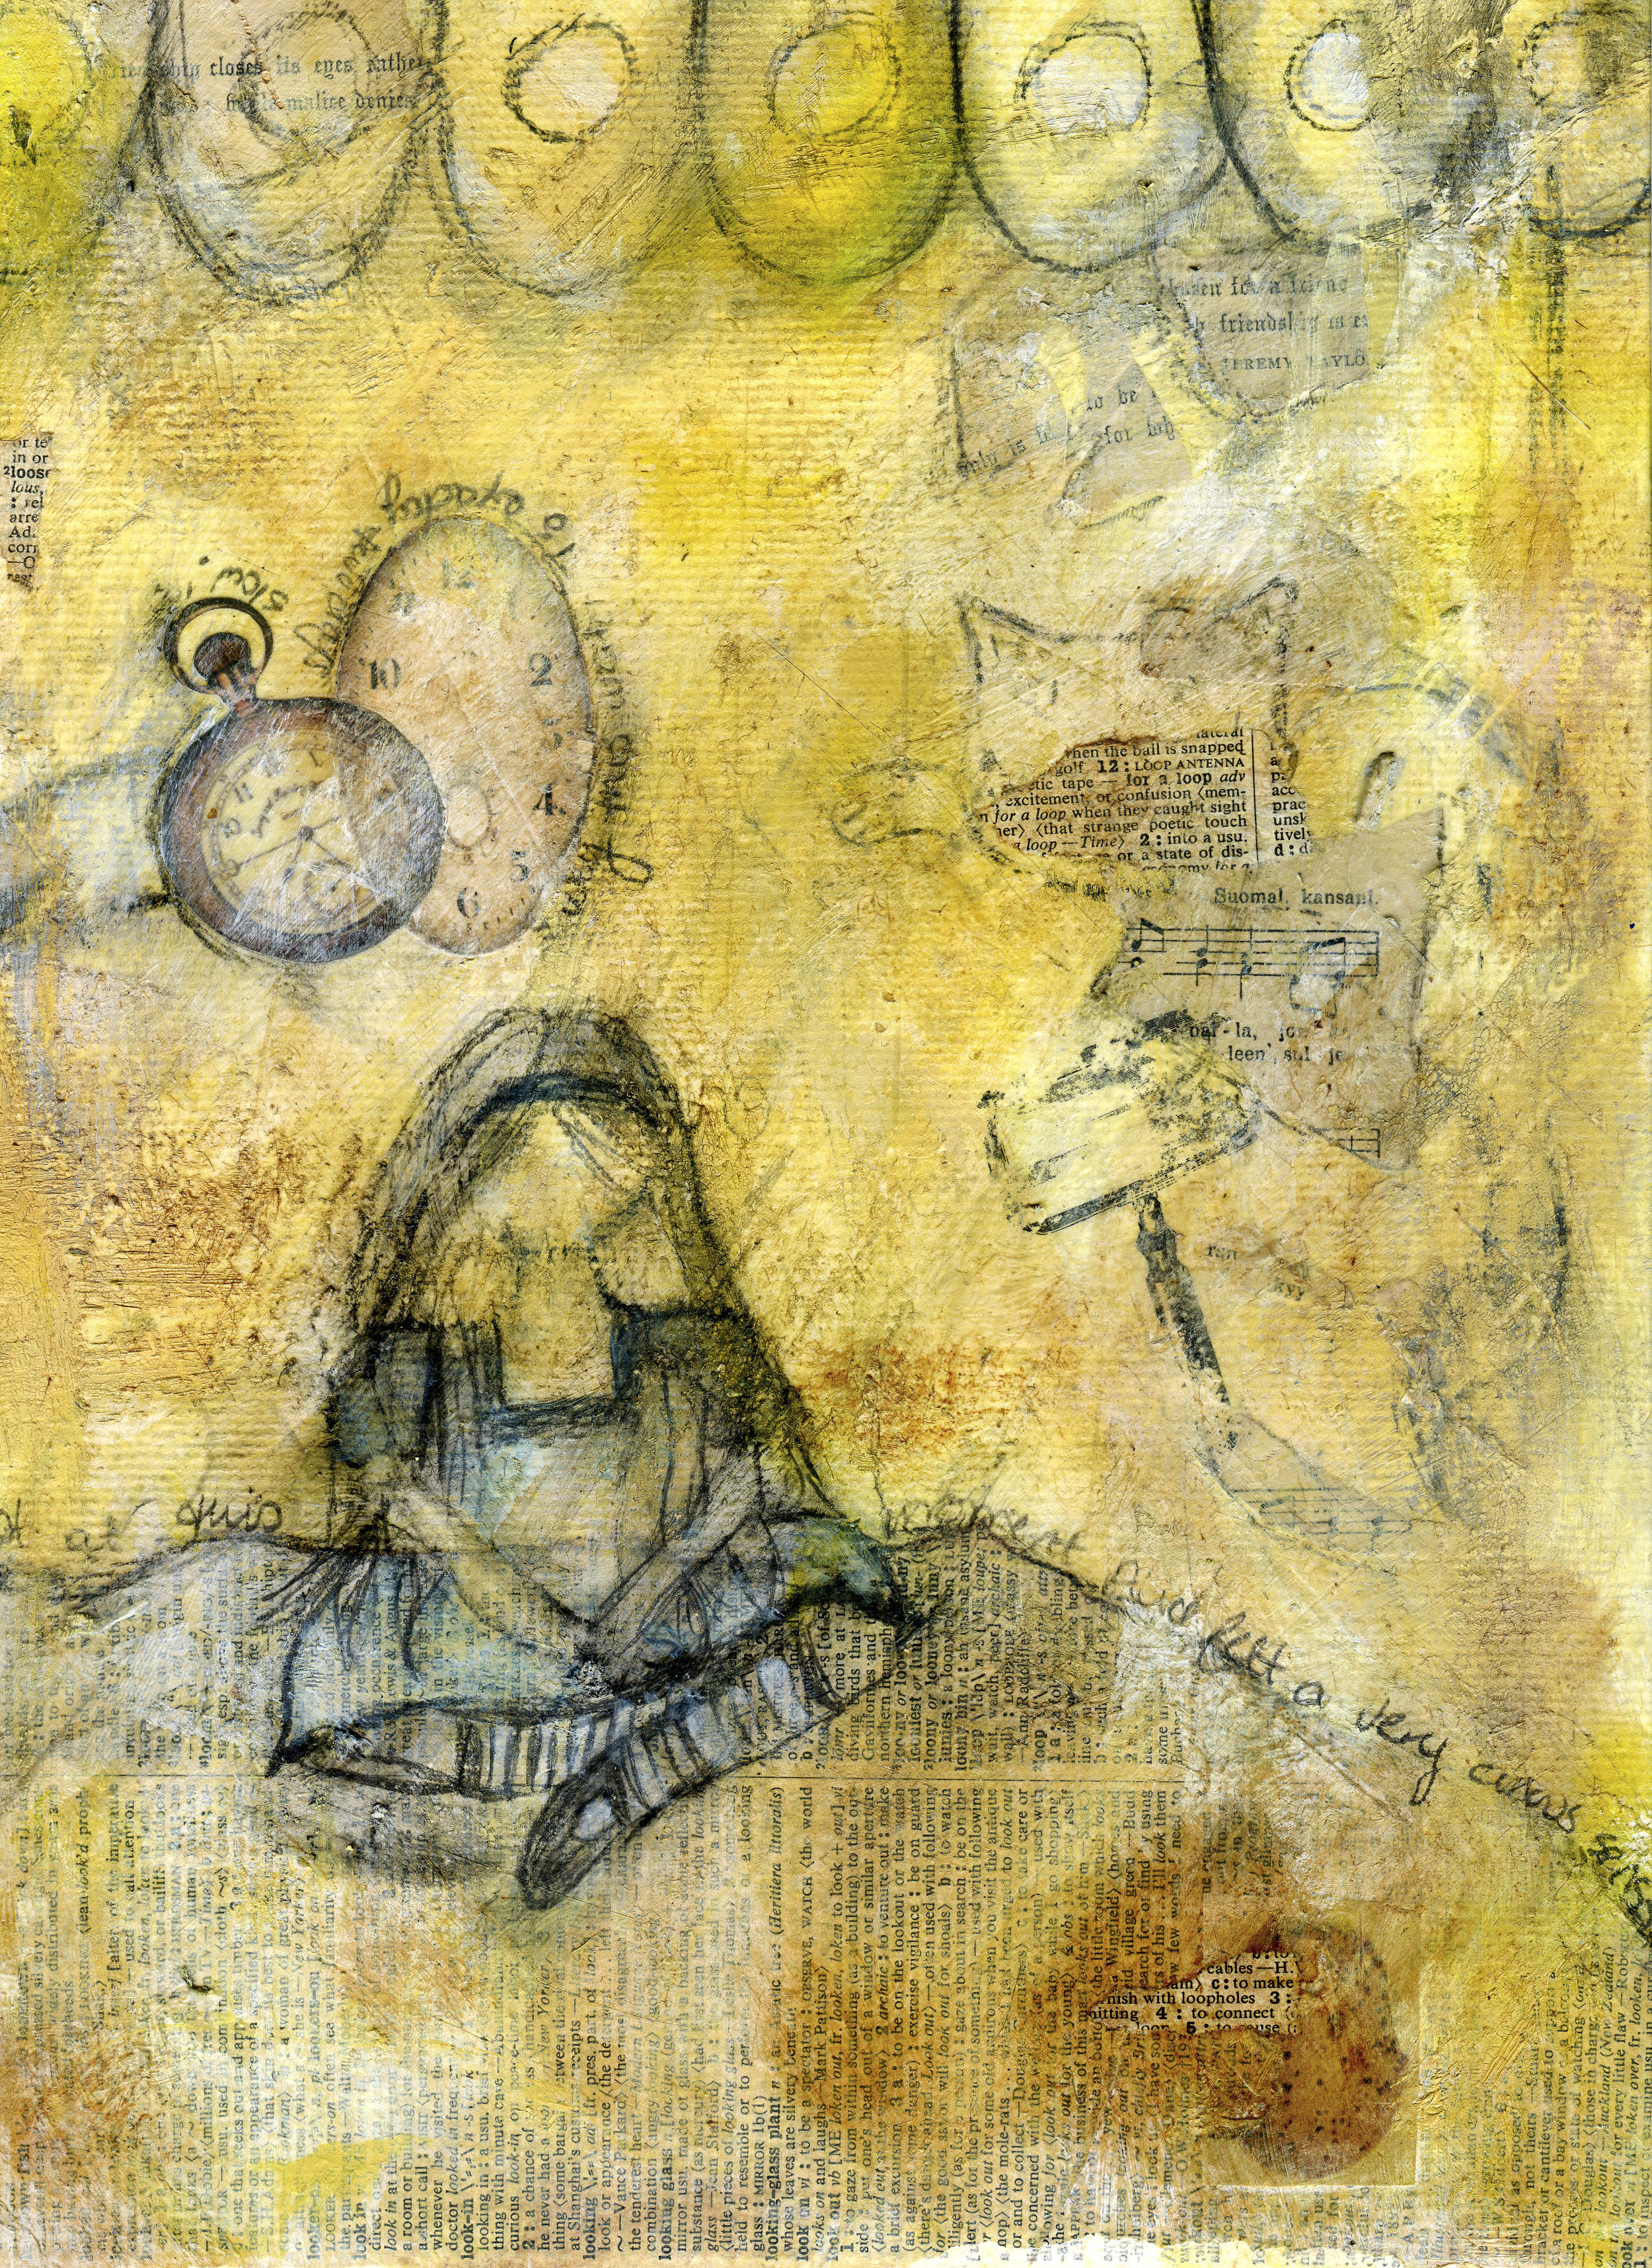 Work-In-Progress 2 - Can you see it begin to come together?| Down The Rabbit Hole | Mixed-Media |©Christy Hydeck